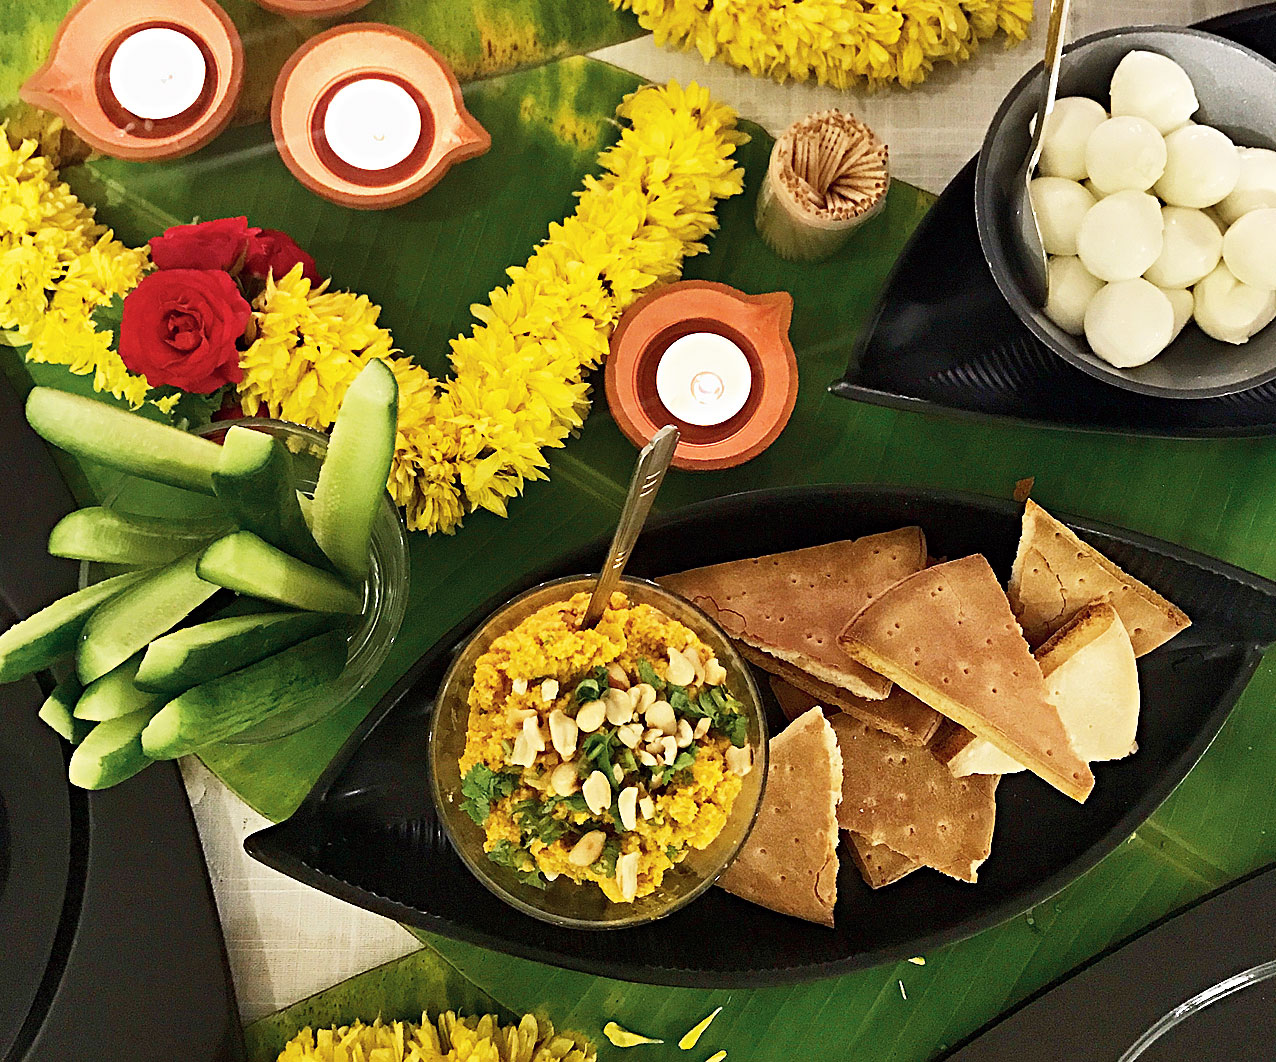 The dining table can be a highlight; decorate it in the traditional way with diyas, flowers and banana leaves